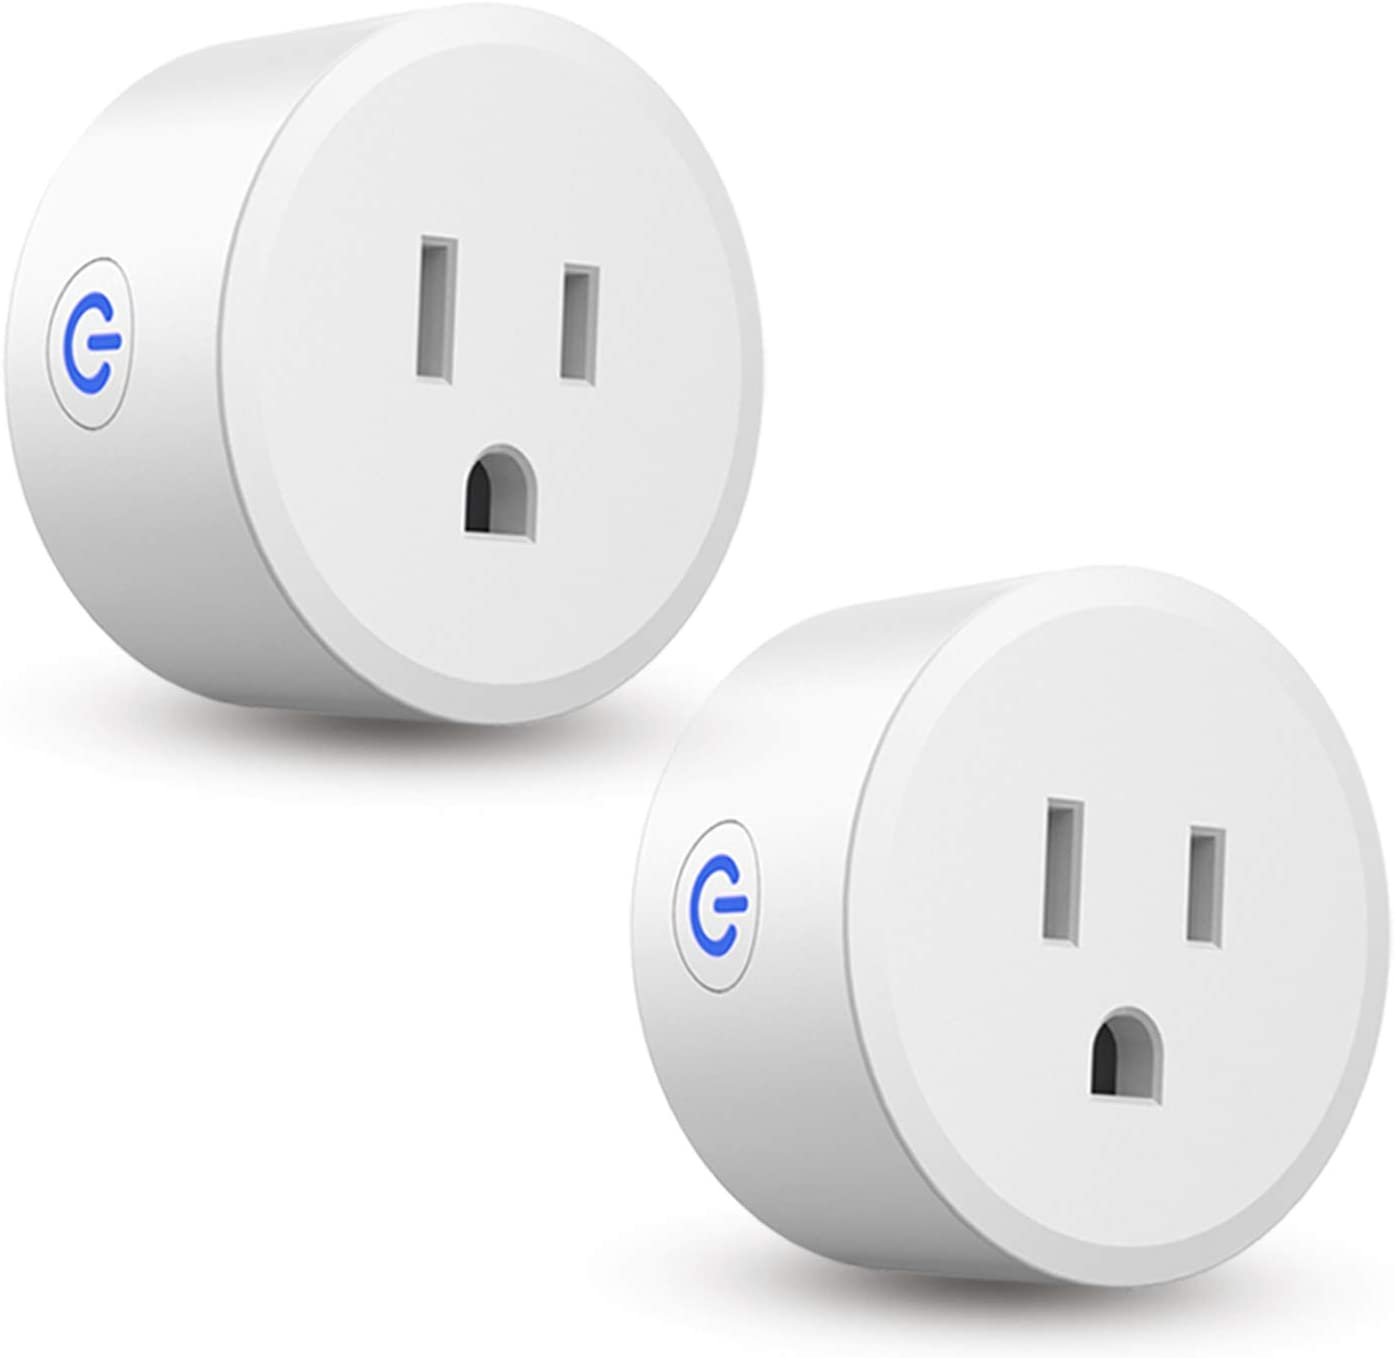 Zigbee Smart Plug, CMARS Mini Smart Outlet Compatible with Alexa, Echo, SmartThings Hub, Google Home, Control Your Home Devices Anywhere, Hub Required (2 PACK)